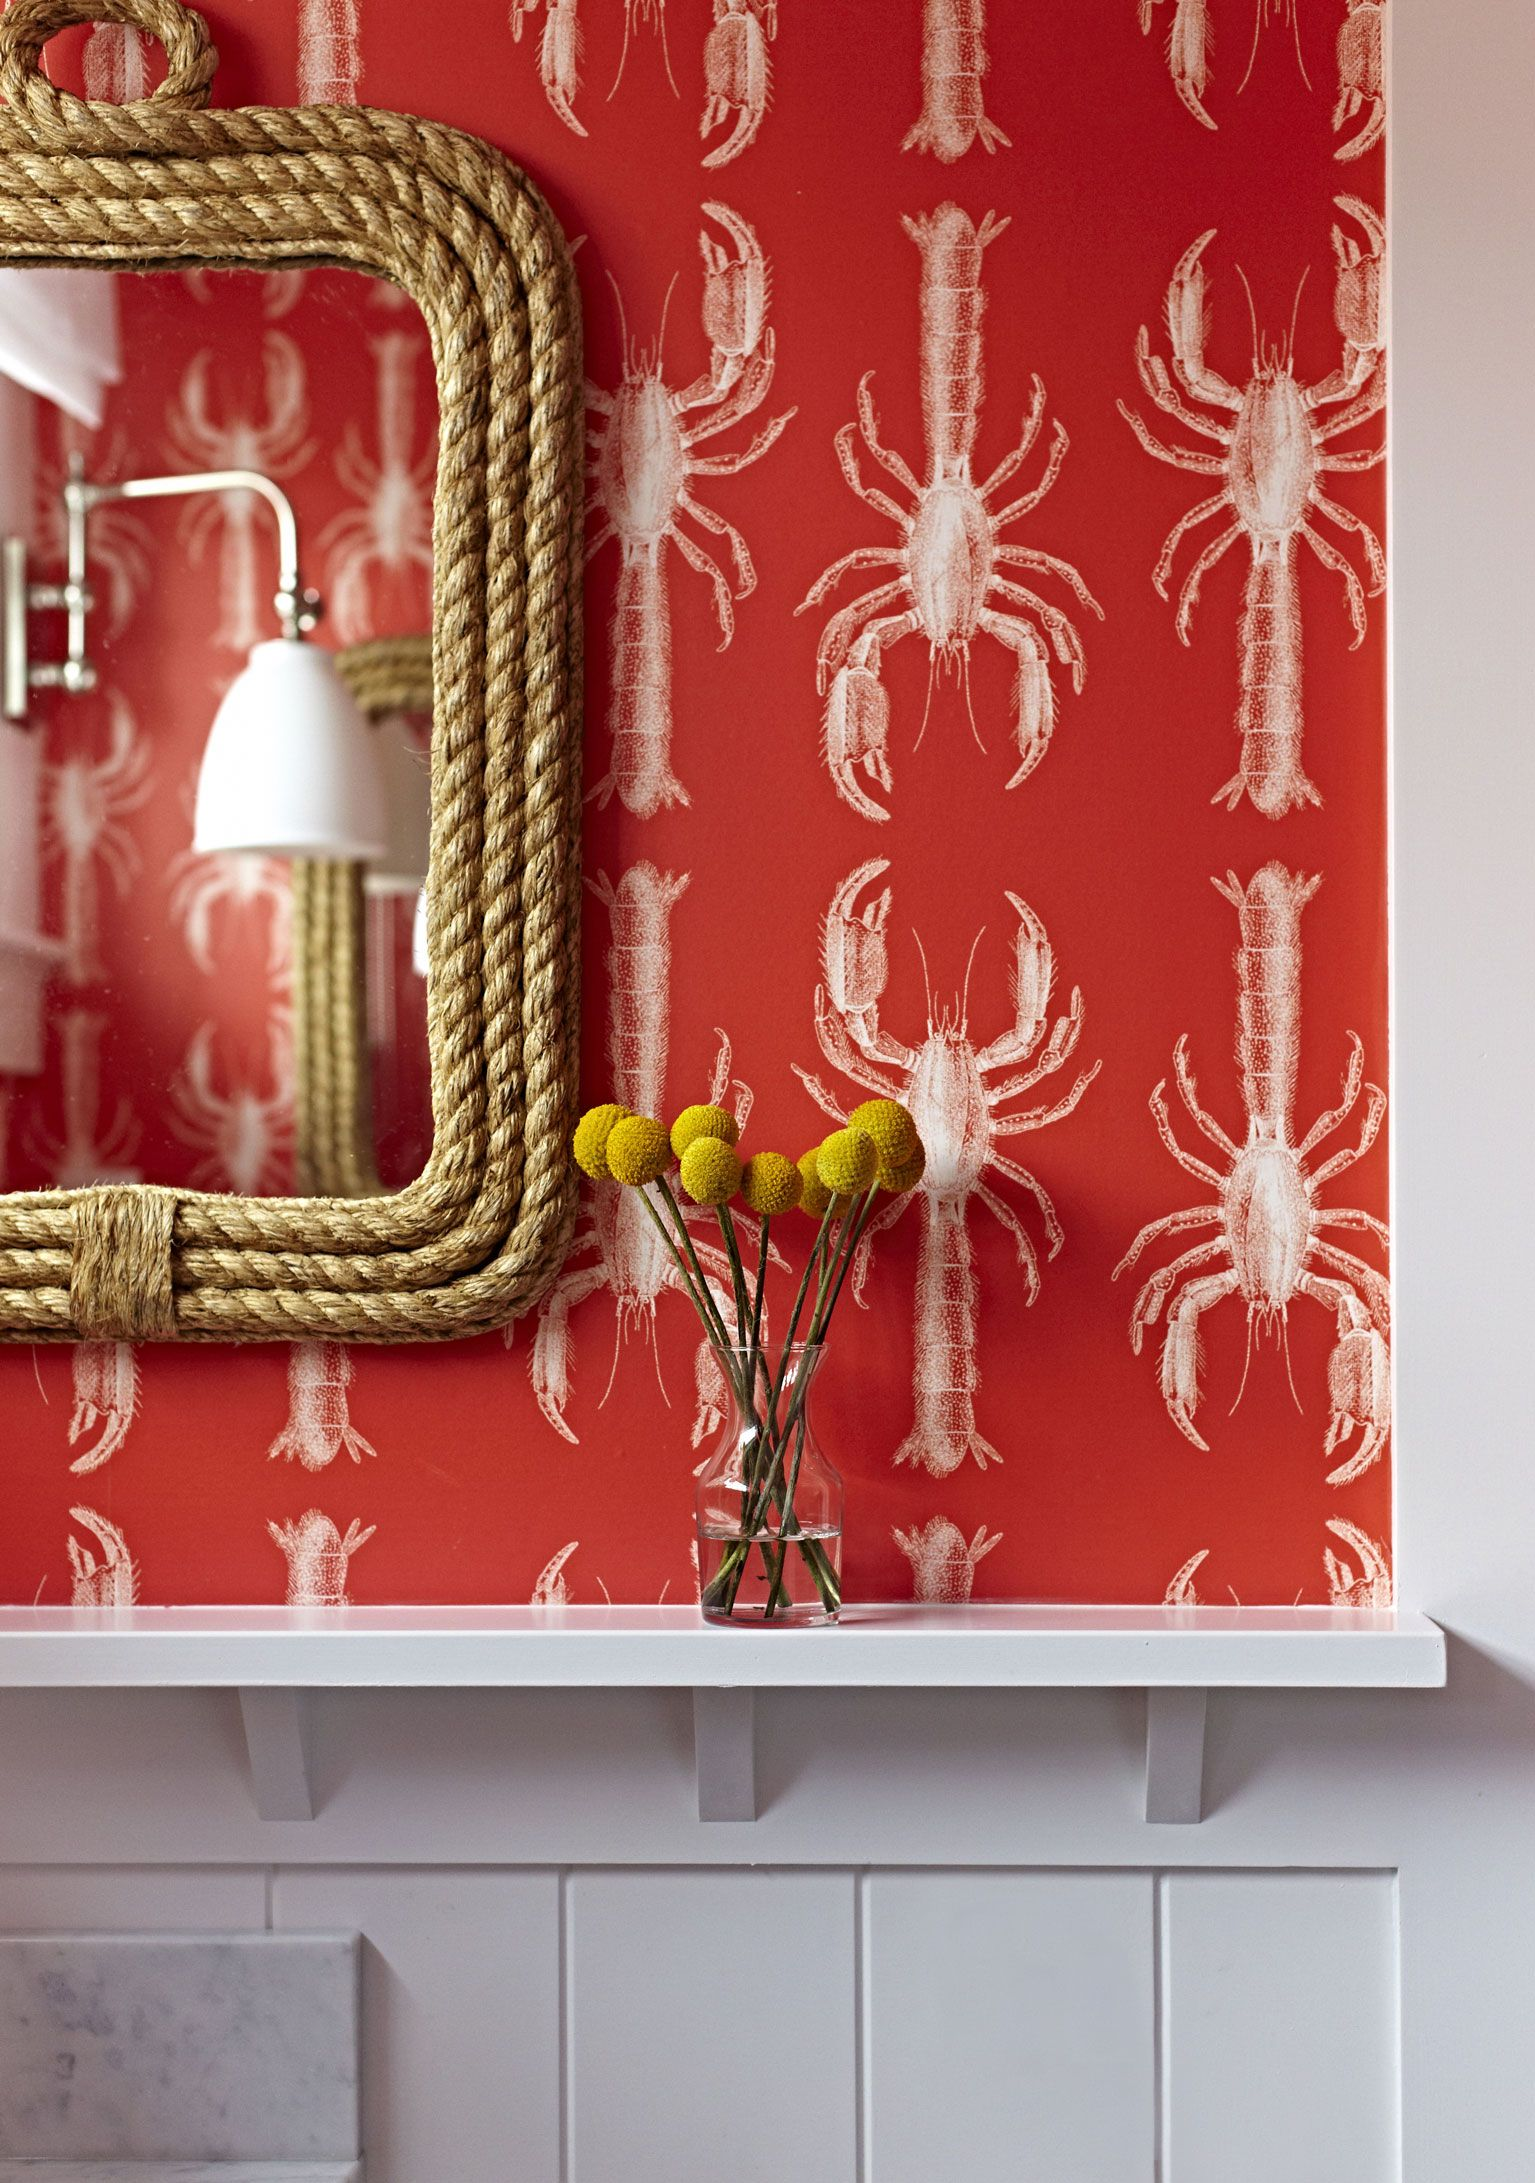 Lobster Wallpaper For Those Who Love To Make A Statement L Coastal Bedrooms Baths L Www Dreambuildersobx Com Beach Cottage Style Beach Cottages Coastal Color Palettes